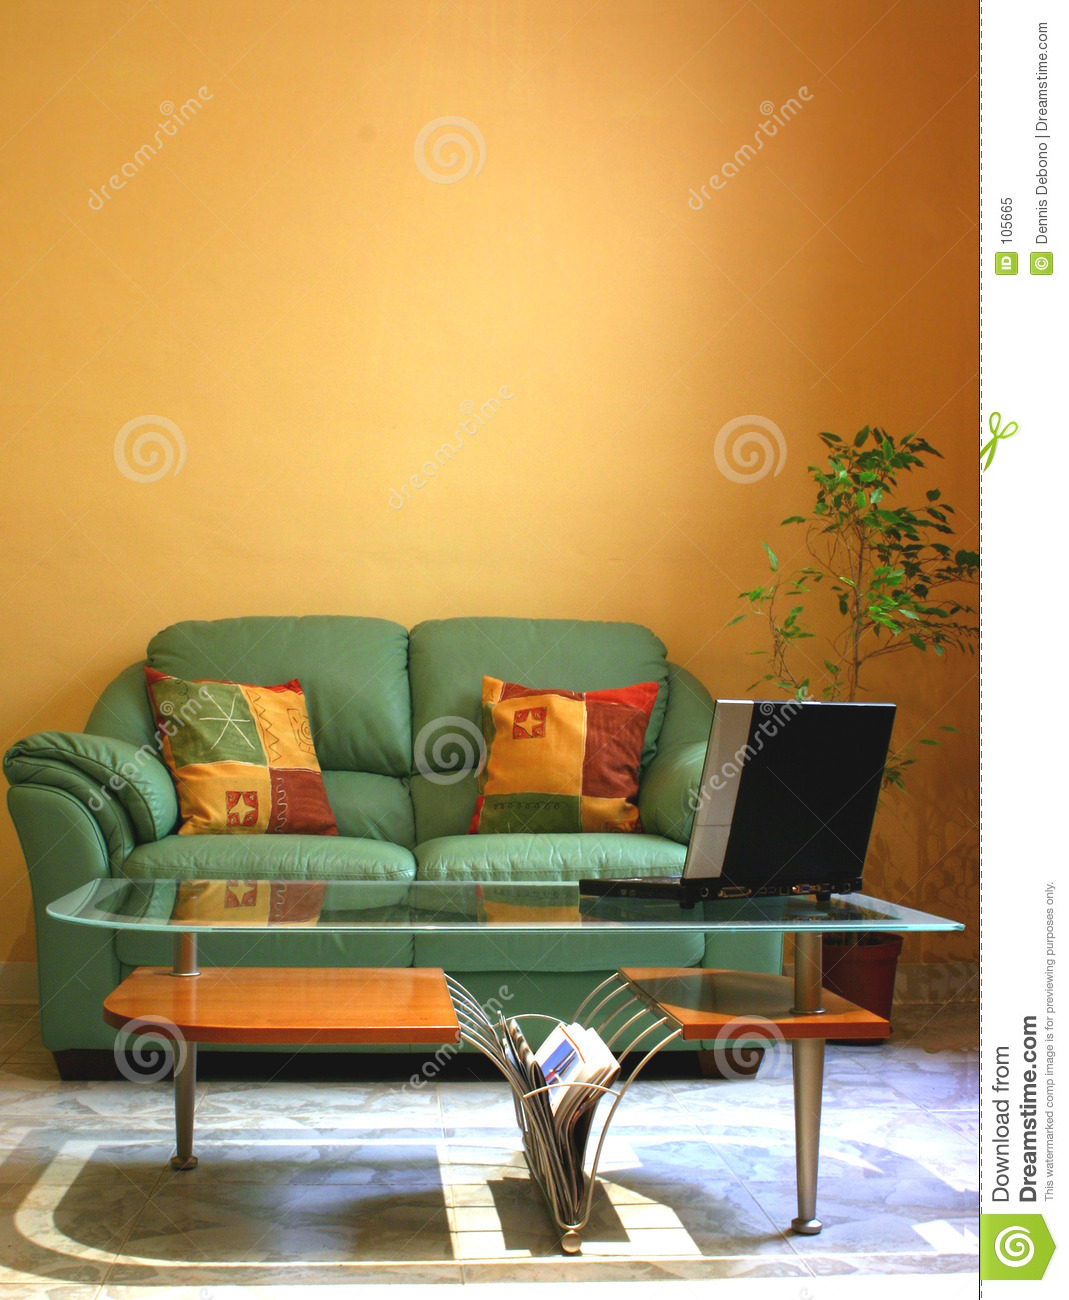 Room Interior Royalty Free Stock Photo Image 105665